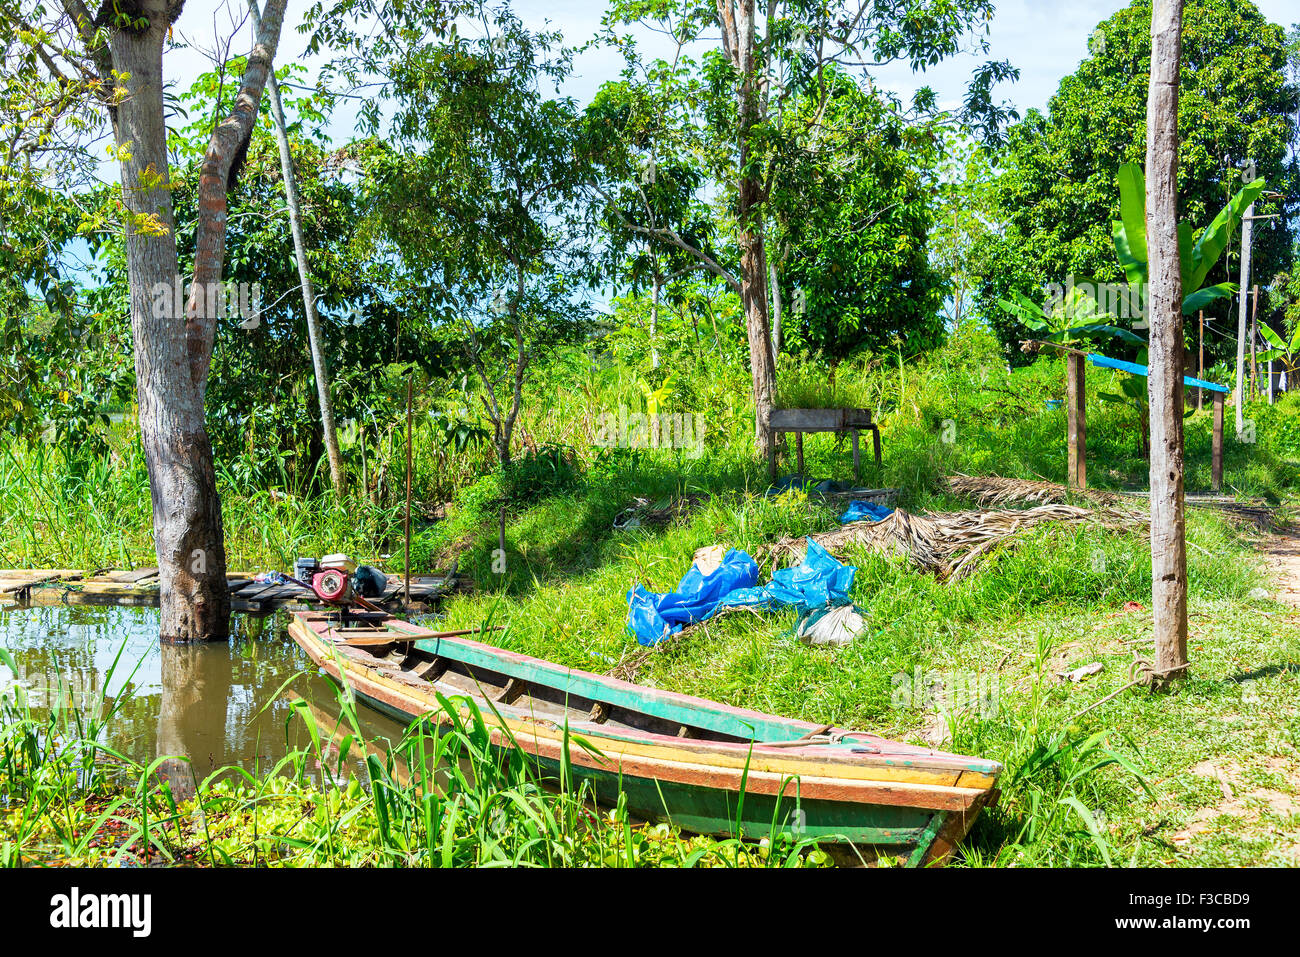 Canoe on the shore of the Yanayacu River in the Amazon rain forest near Iquitos, Peru - Stock Image